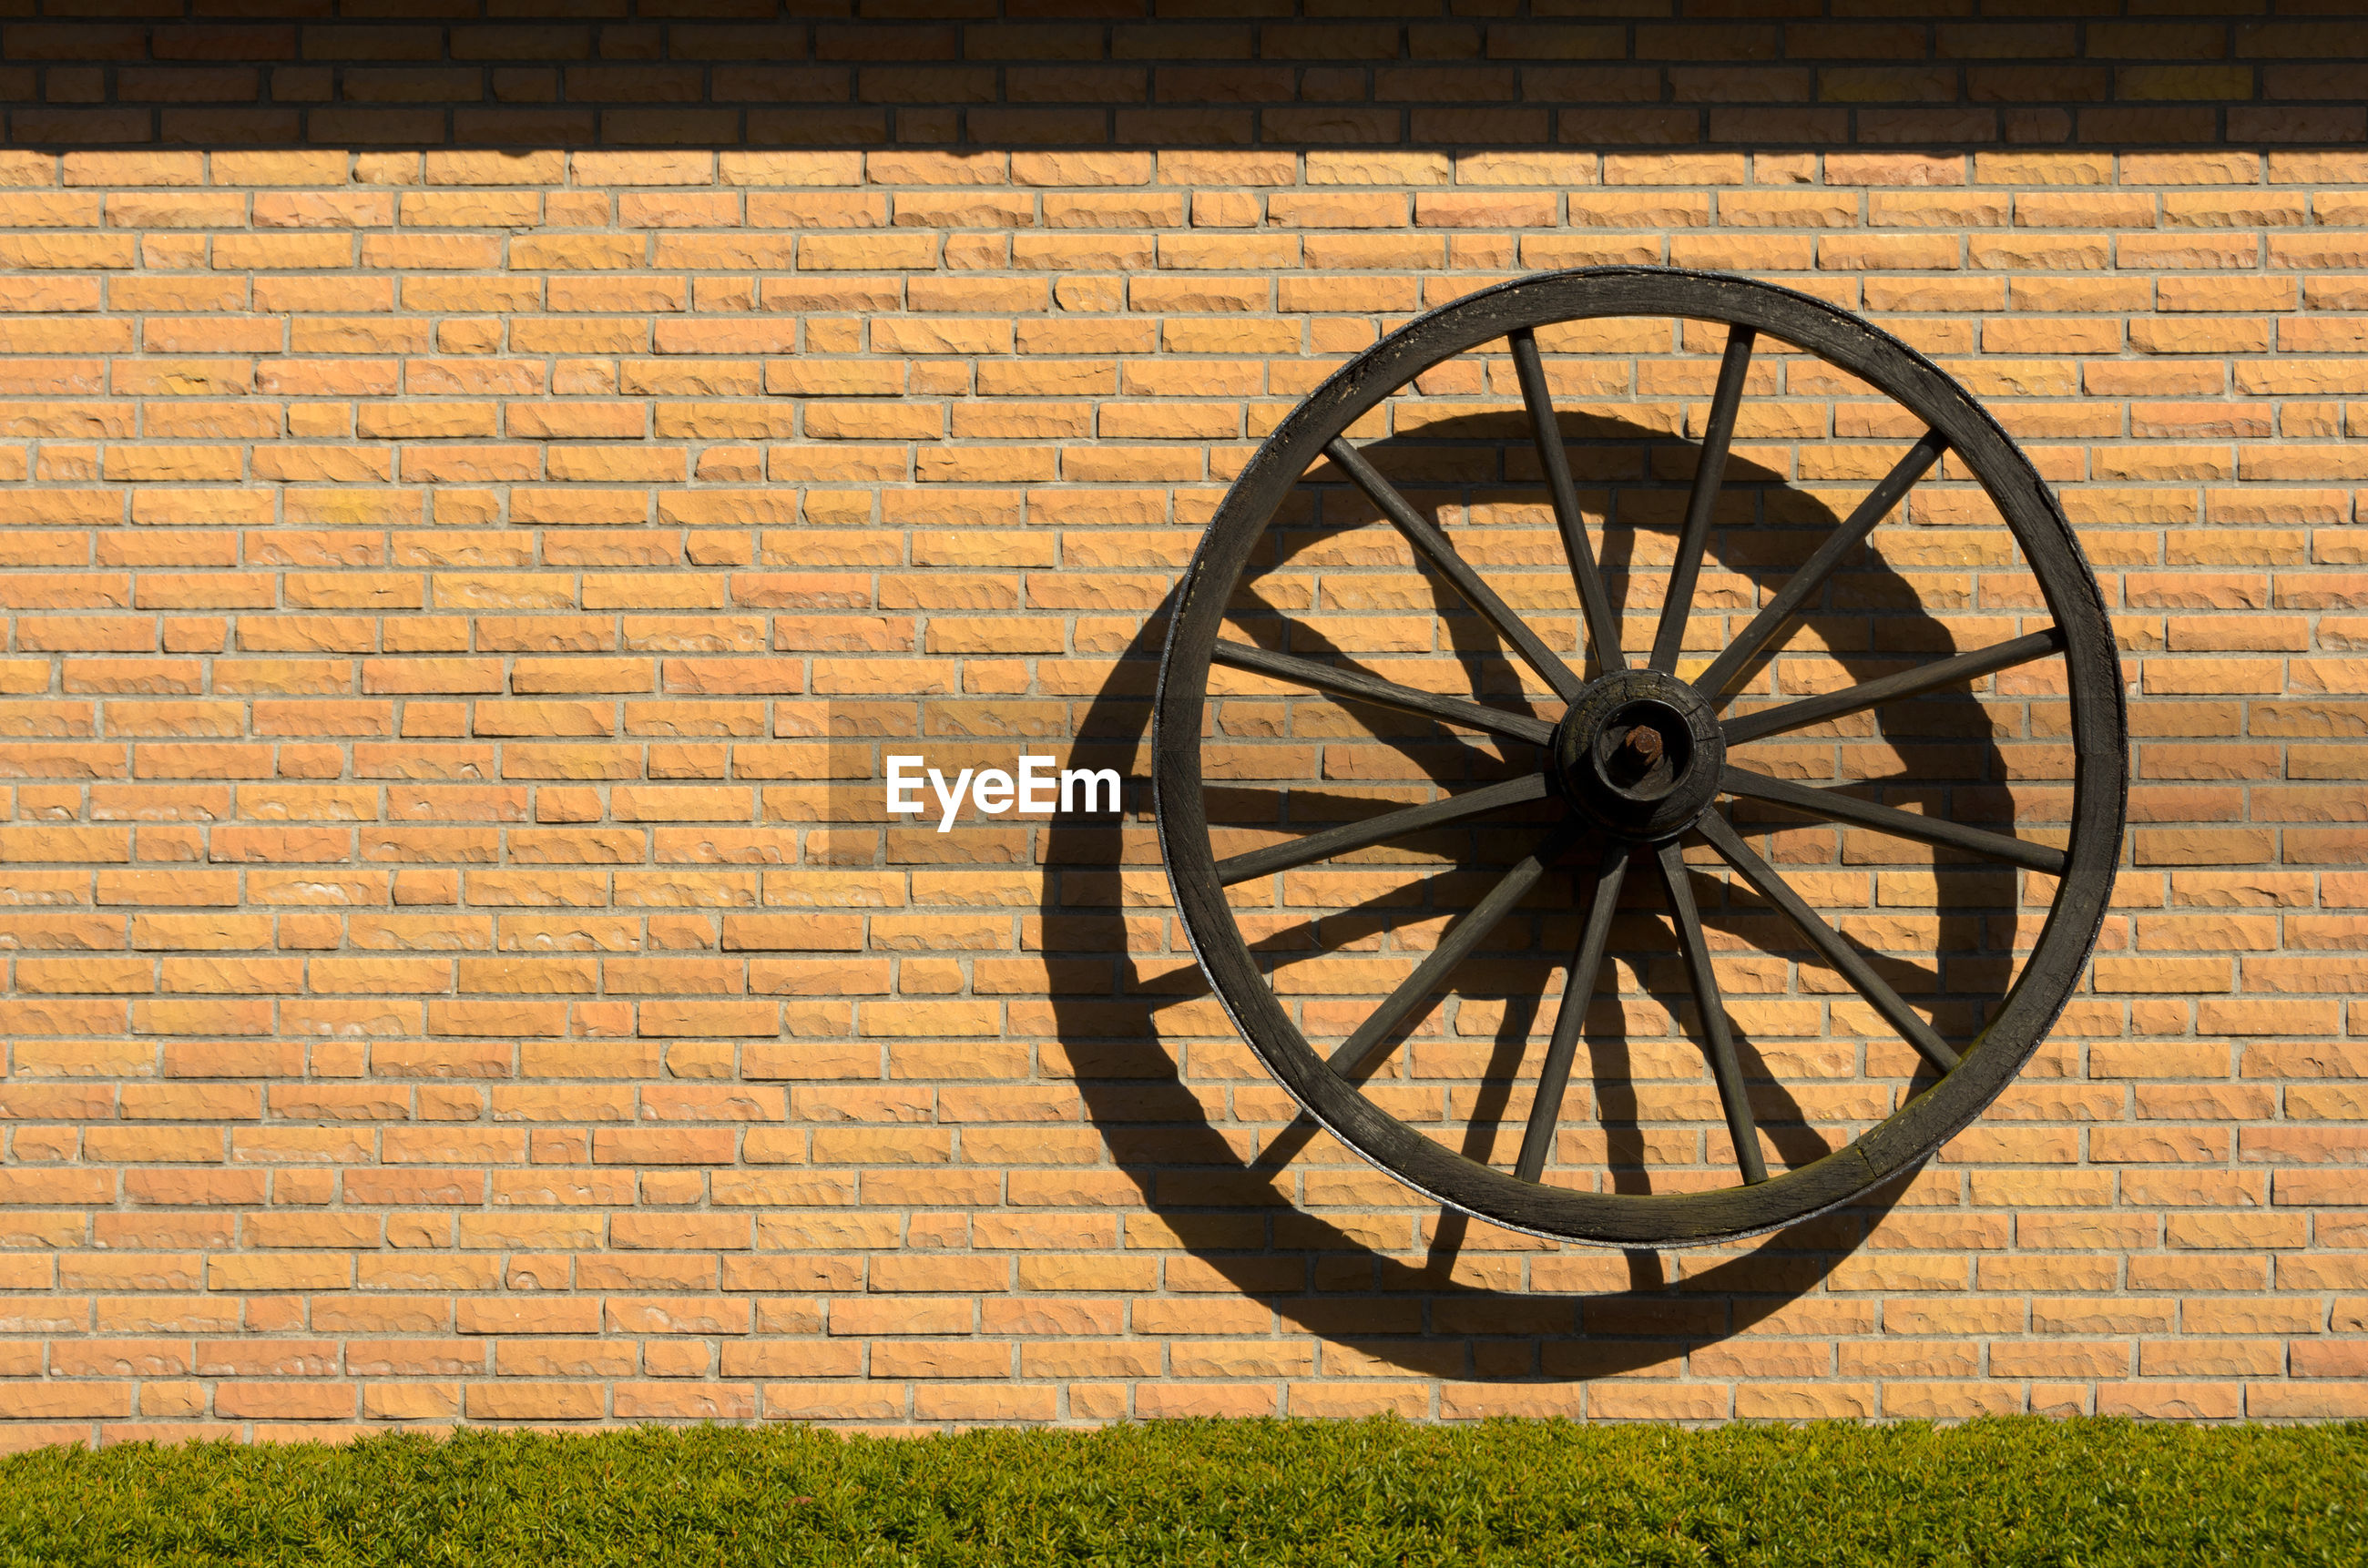 VIEW OF BICYCLE WHEEL